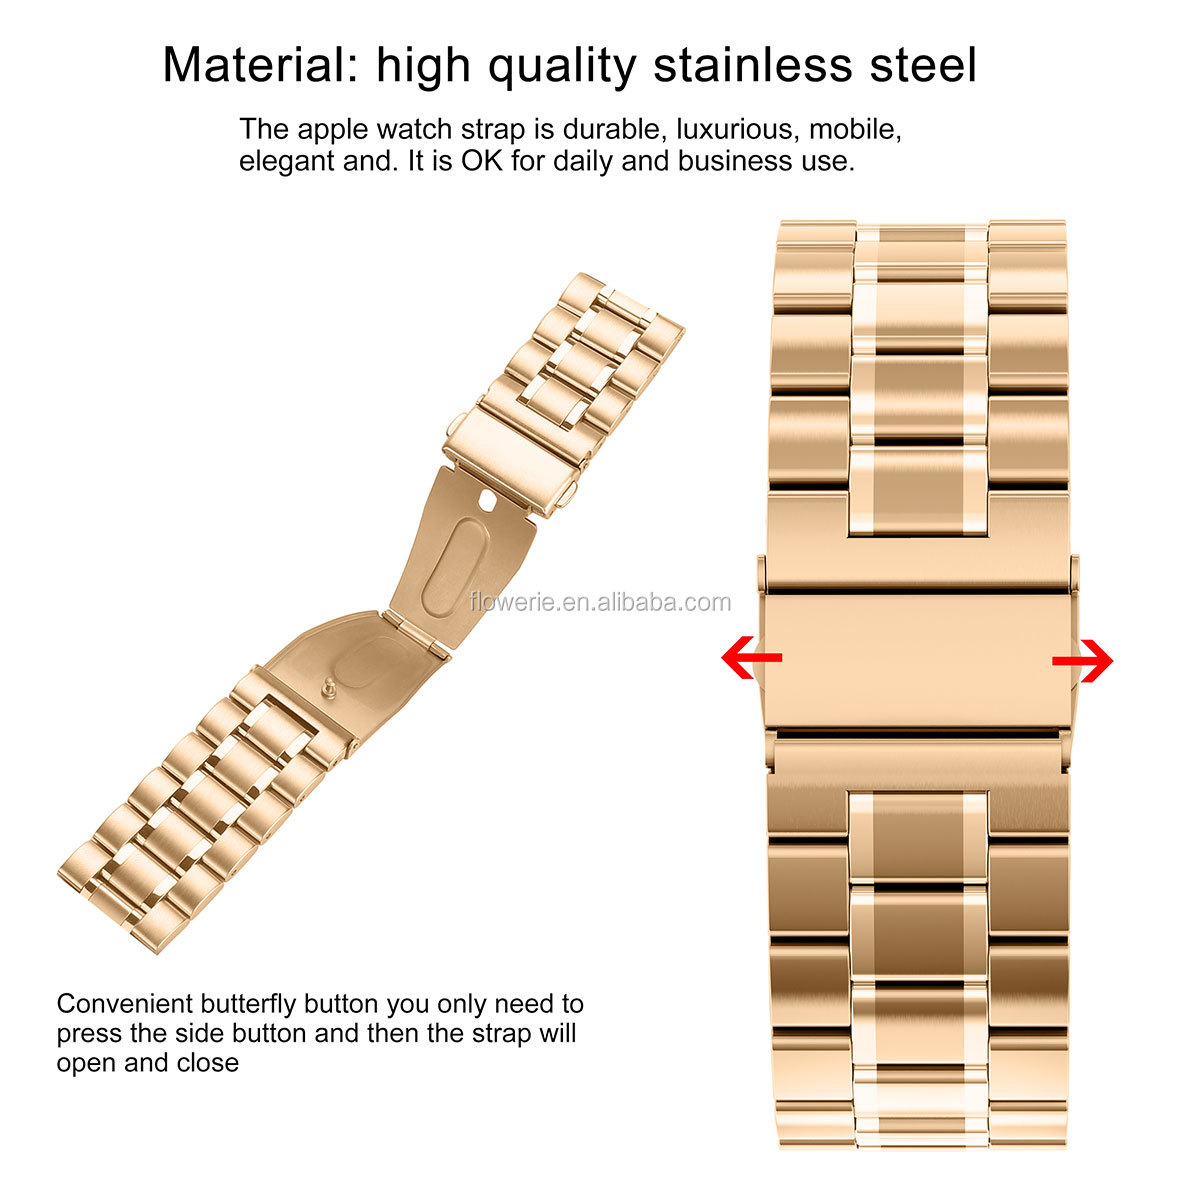 METAL581036 Economical custom design stainless steel strap for apple watch